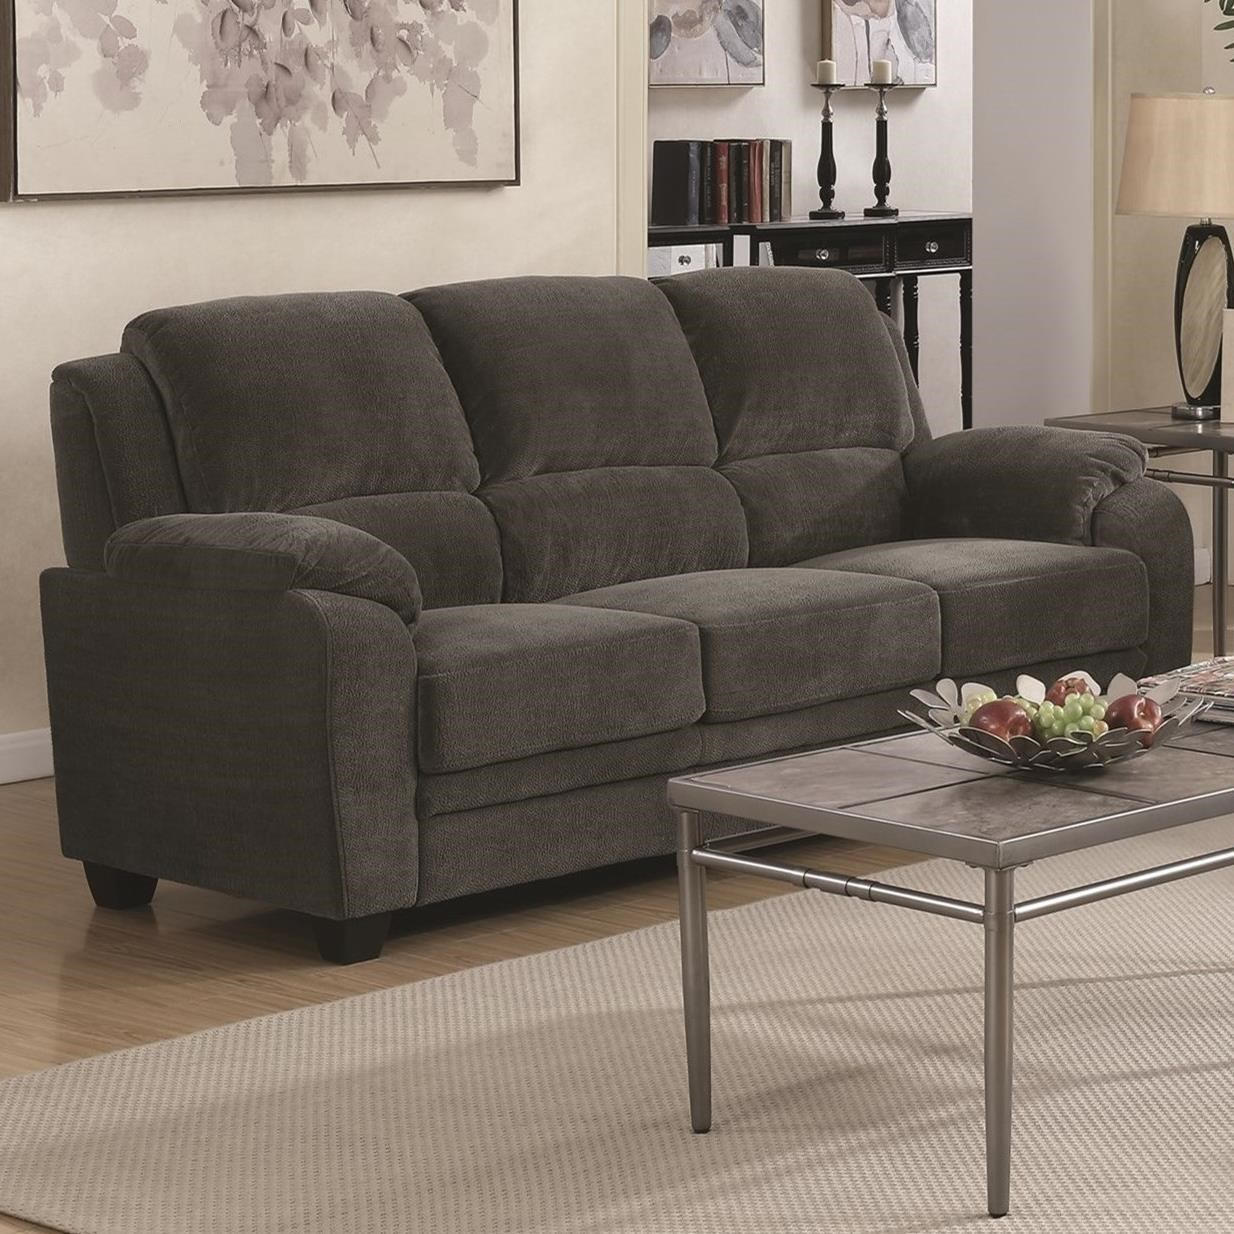 Northend Sofa by Coaster at Northeast Factory Direct